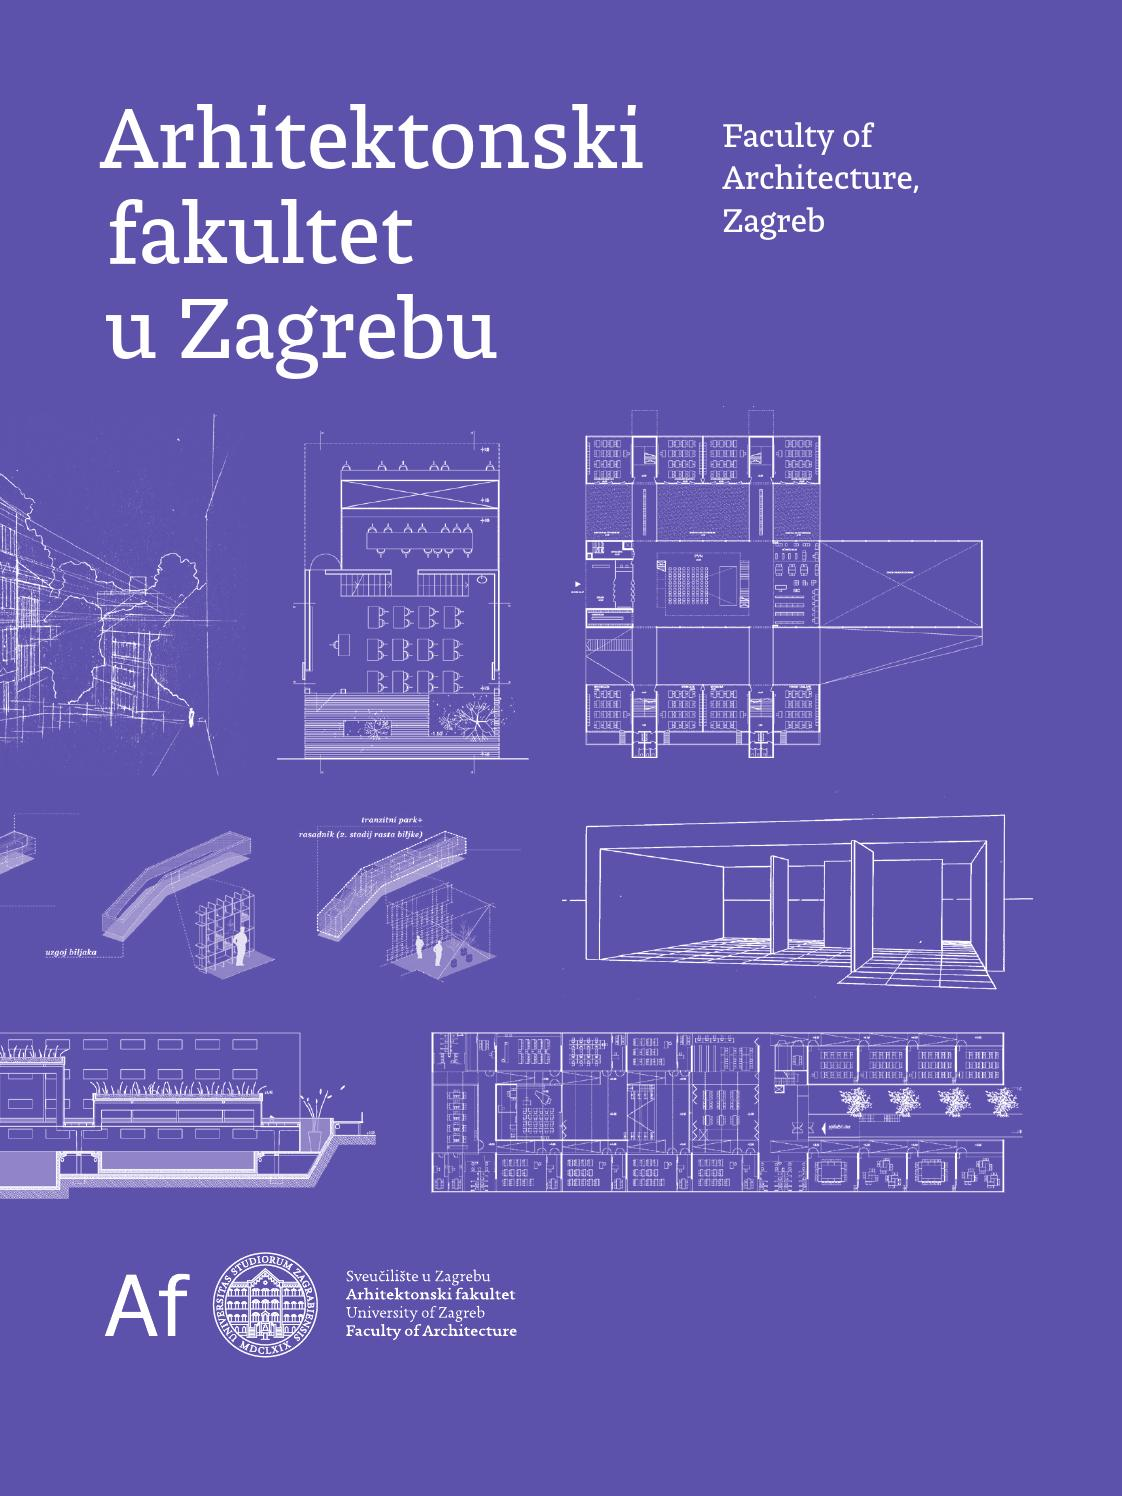 Afzg Promo Brosura 2015 By Faculty Of Architecture Zagreb Issuu